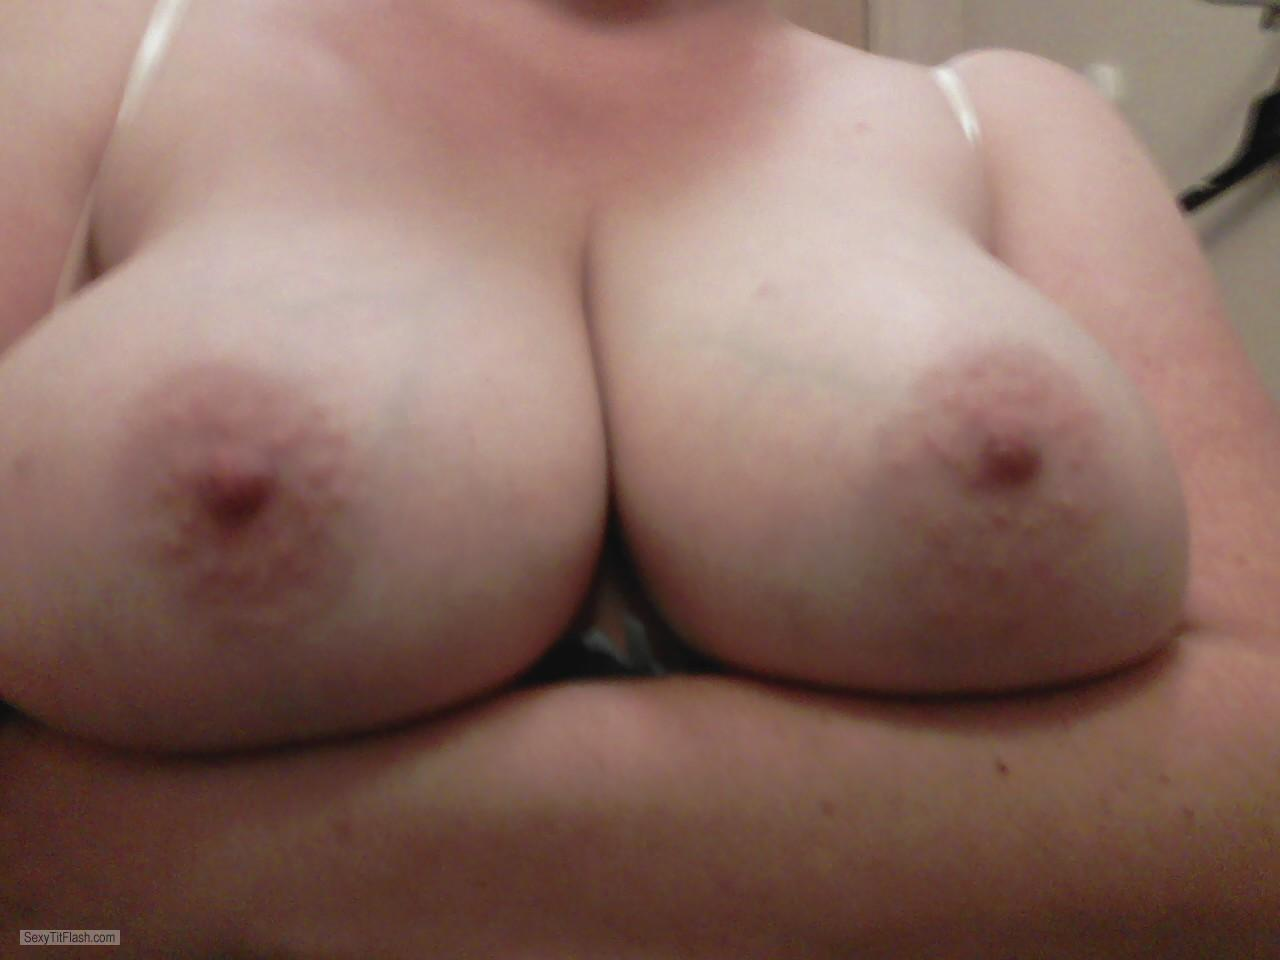 from Jerome my wifes nude breasts